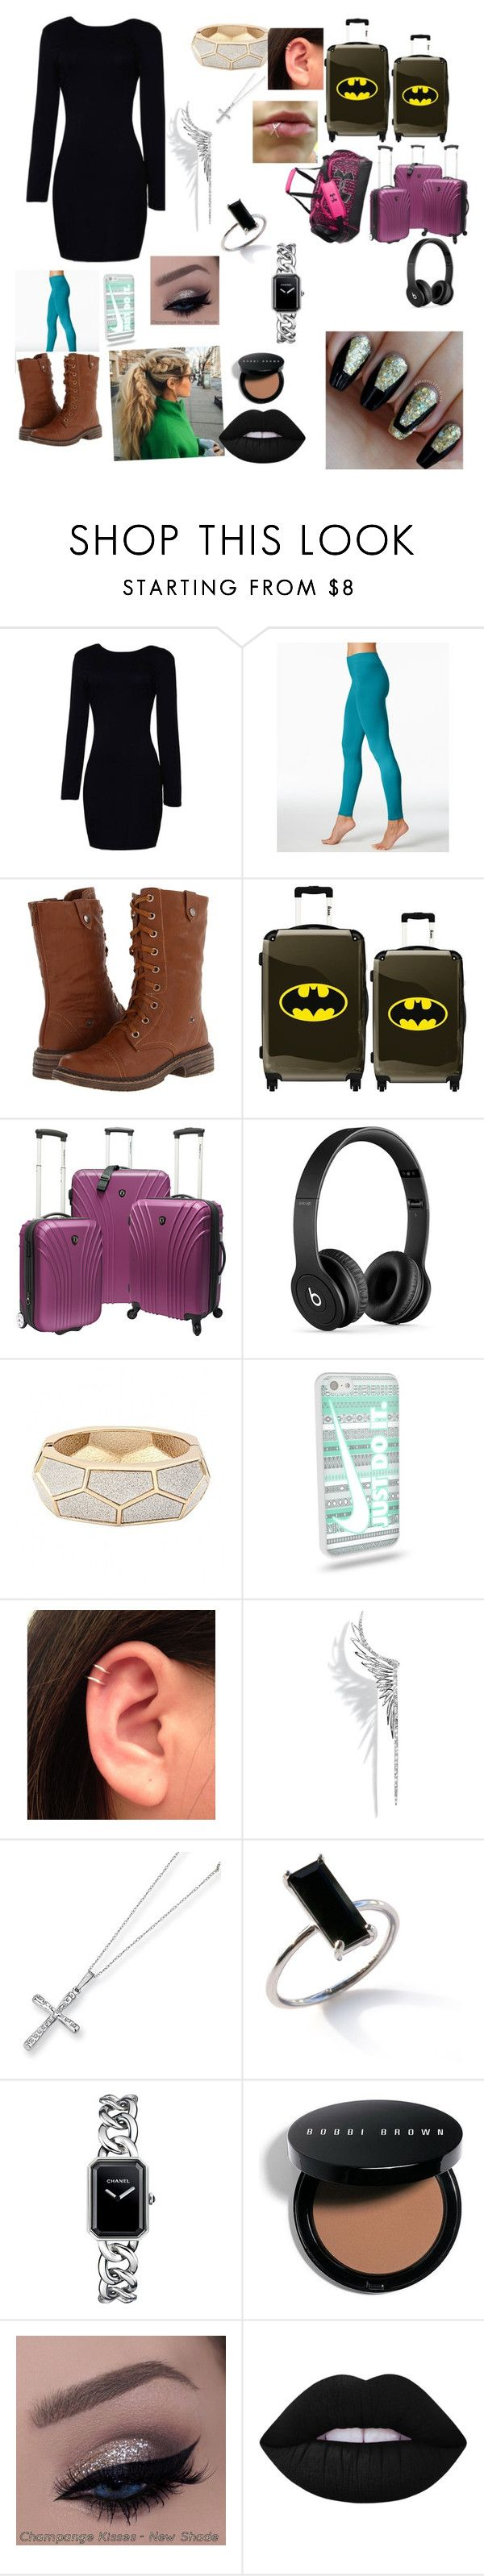 """Going to Paris with Niall part 1"" by hazzajelly on Polyvore featuring Wanted, IKASE, Under Armour, Beats by Dr. Dre, Cristina Ortiz, Kevin Jewelers, Chanel, Bobbi Brown Cosmetics and Lime Crime"